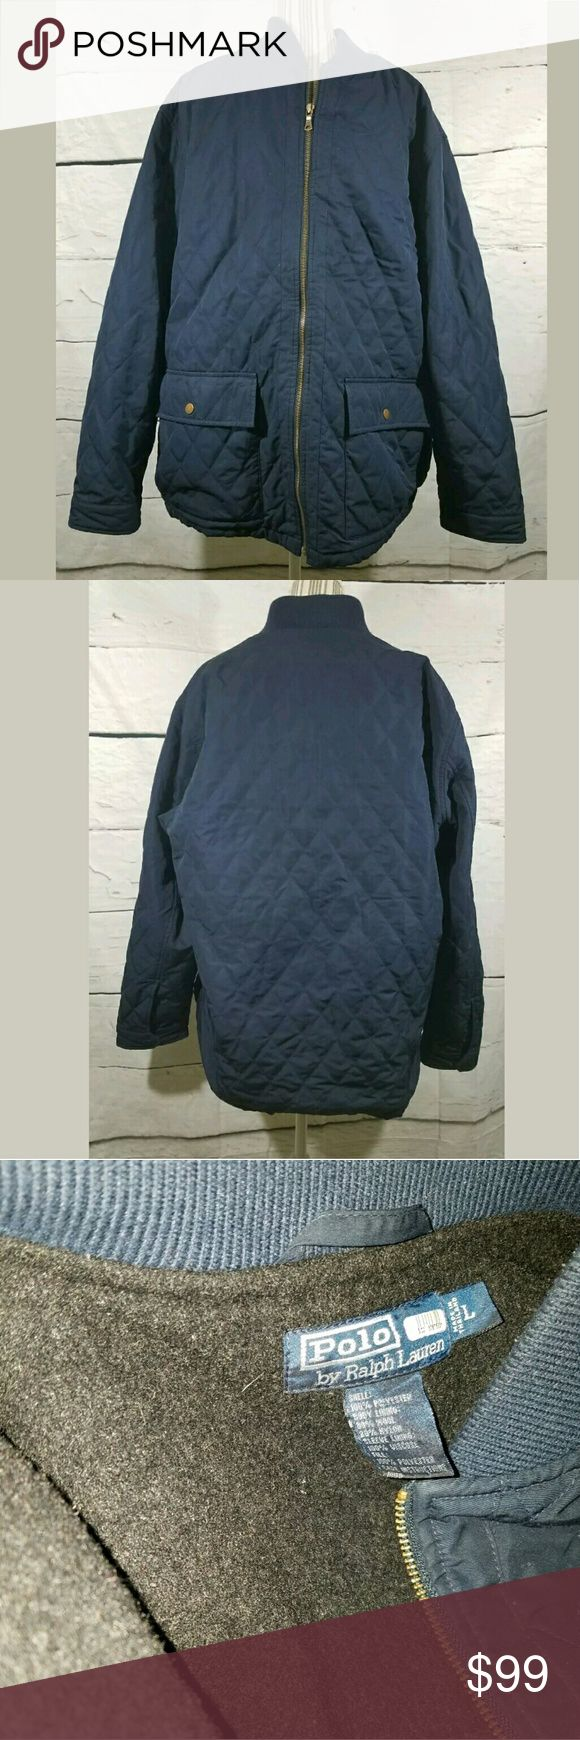 Ralph Lauren Polo Quilted Wool Lined Hunting Coat Ralph Lauren Polo Quilted Wool Lined Hunting Coat Blue Size Large EUC Polo by Ralph Lauren Jackets & Coats Military & Field